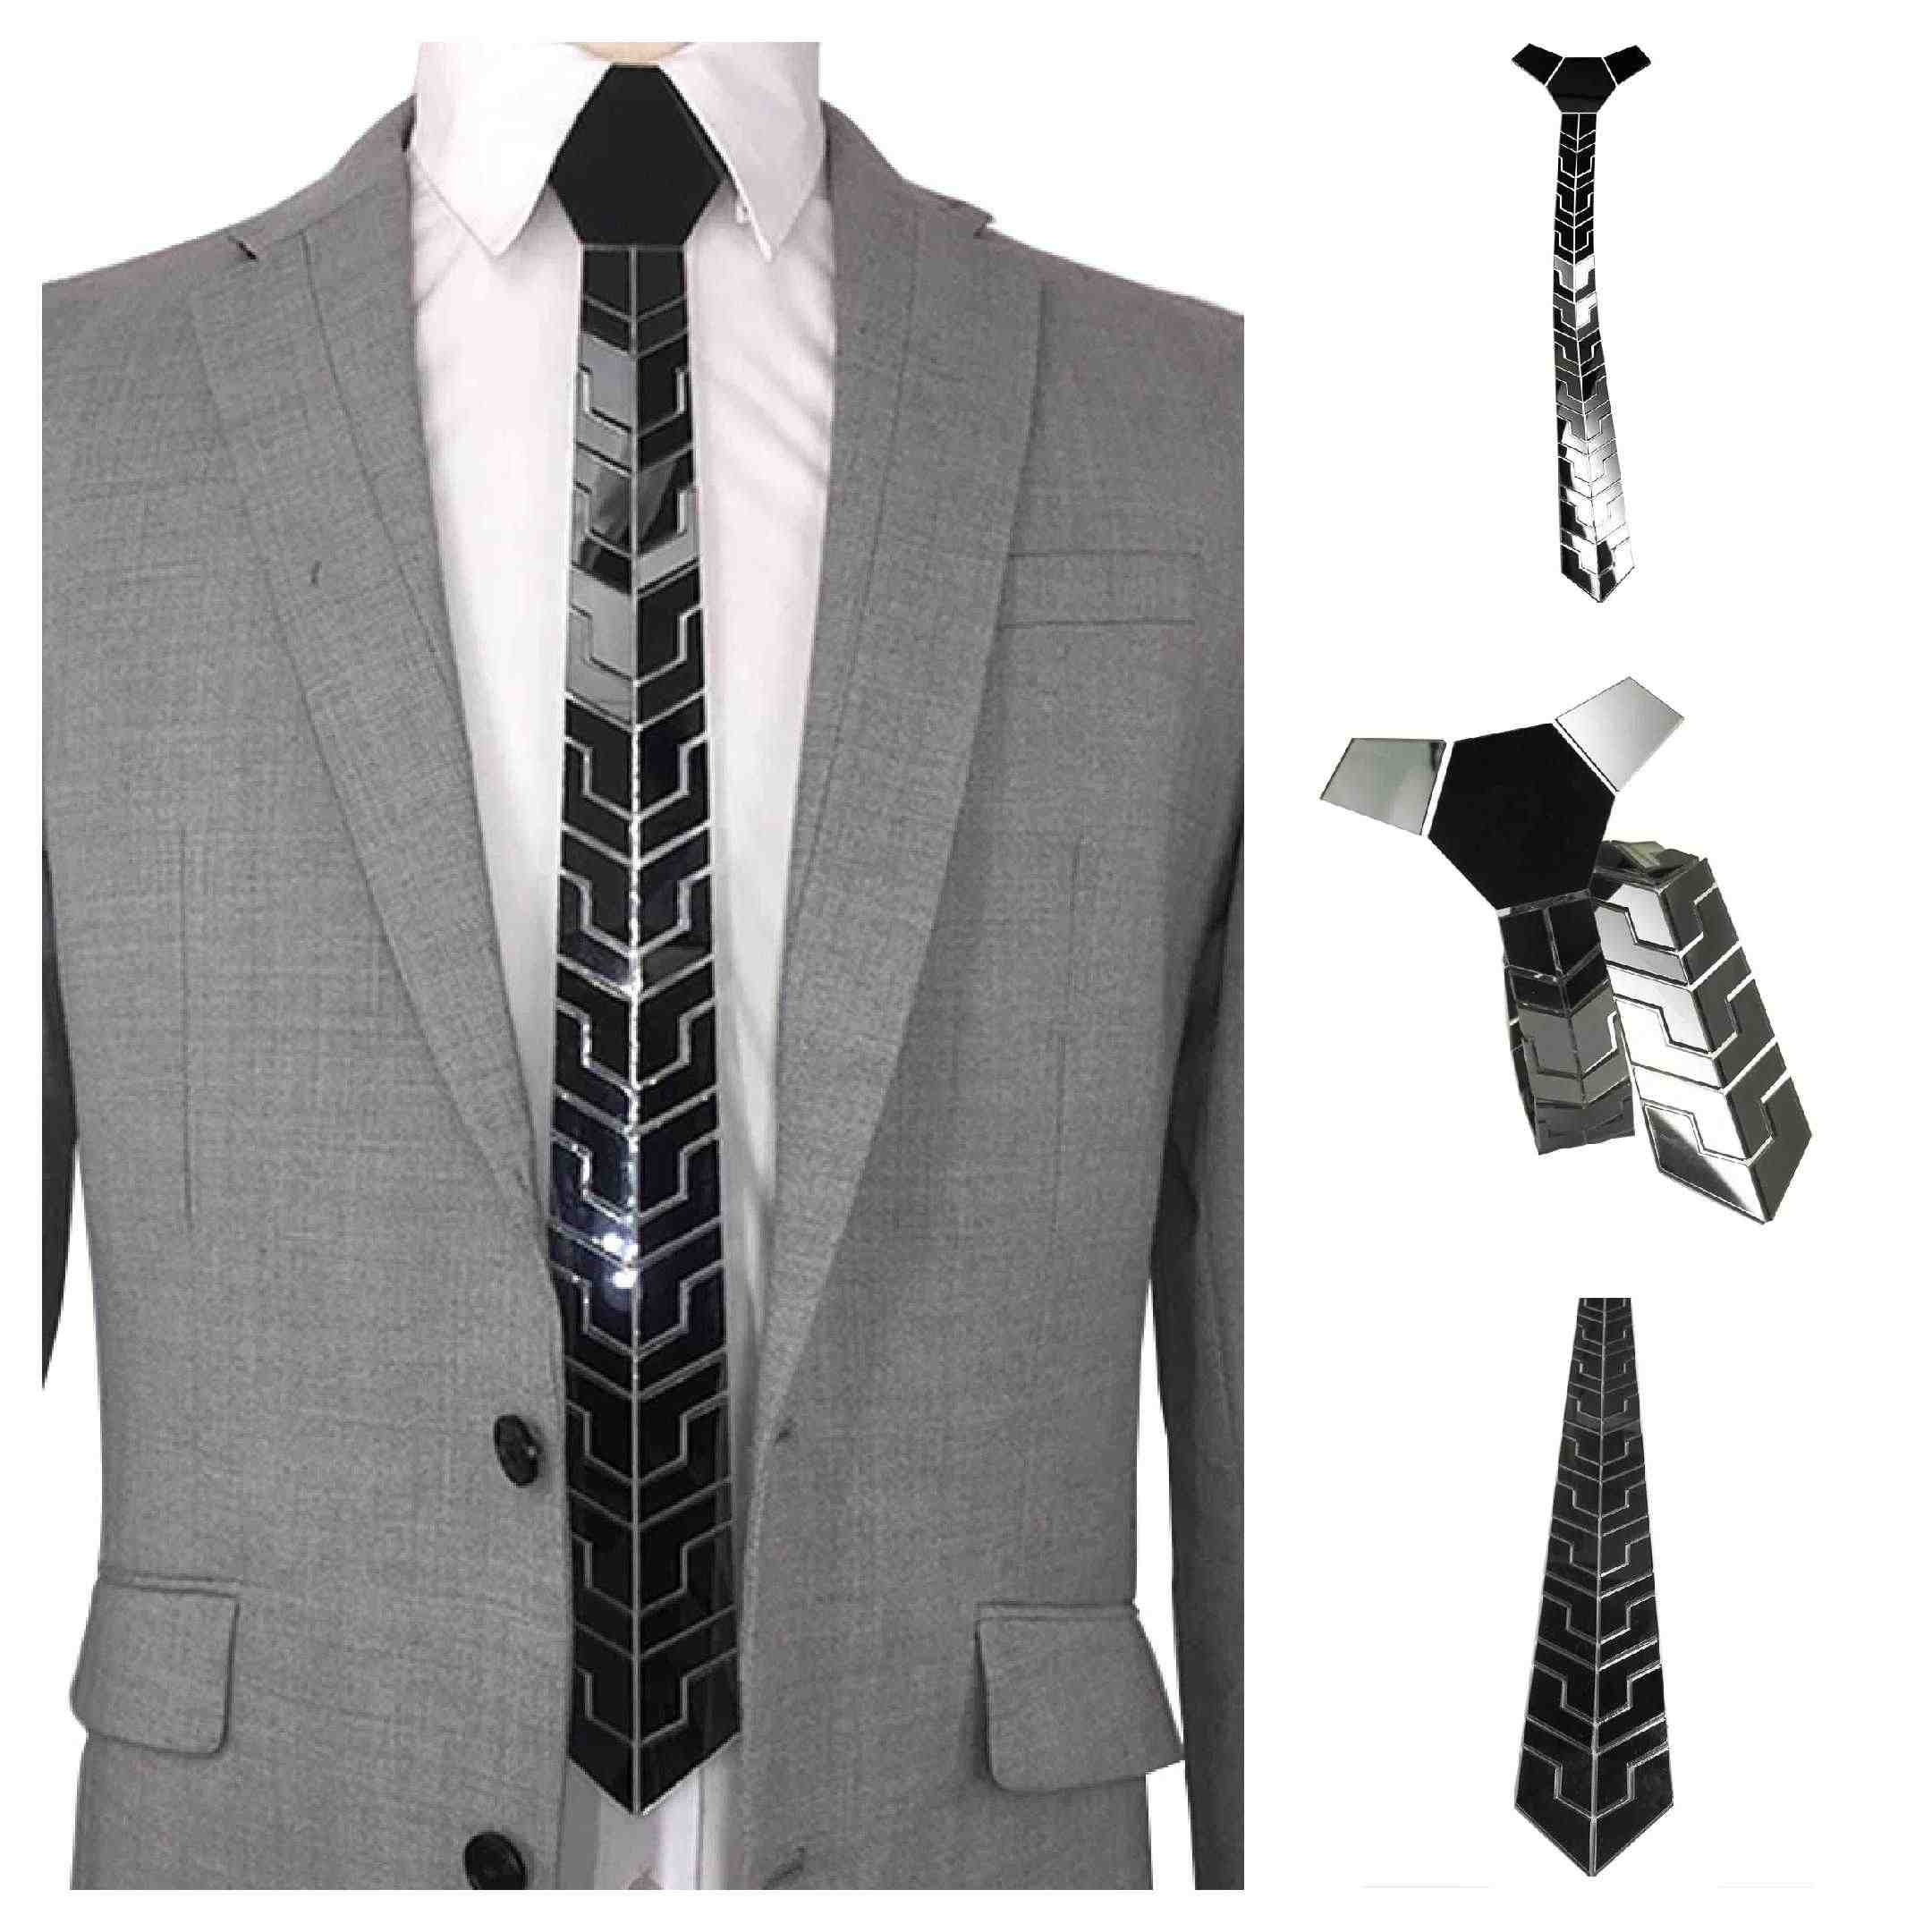 New Arrival Black Mirror Slim Necktie with Classy Plaid Pattern Unique Shining Ties Mirror Finishing Vintage Style Hextie Gift